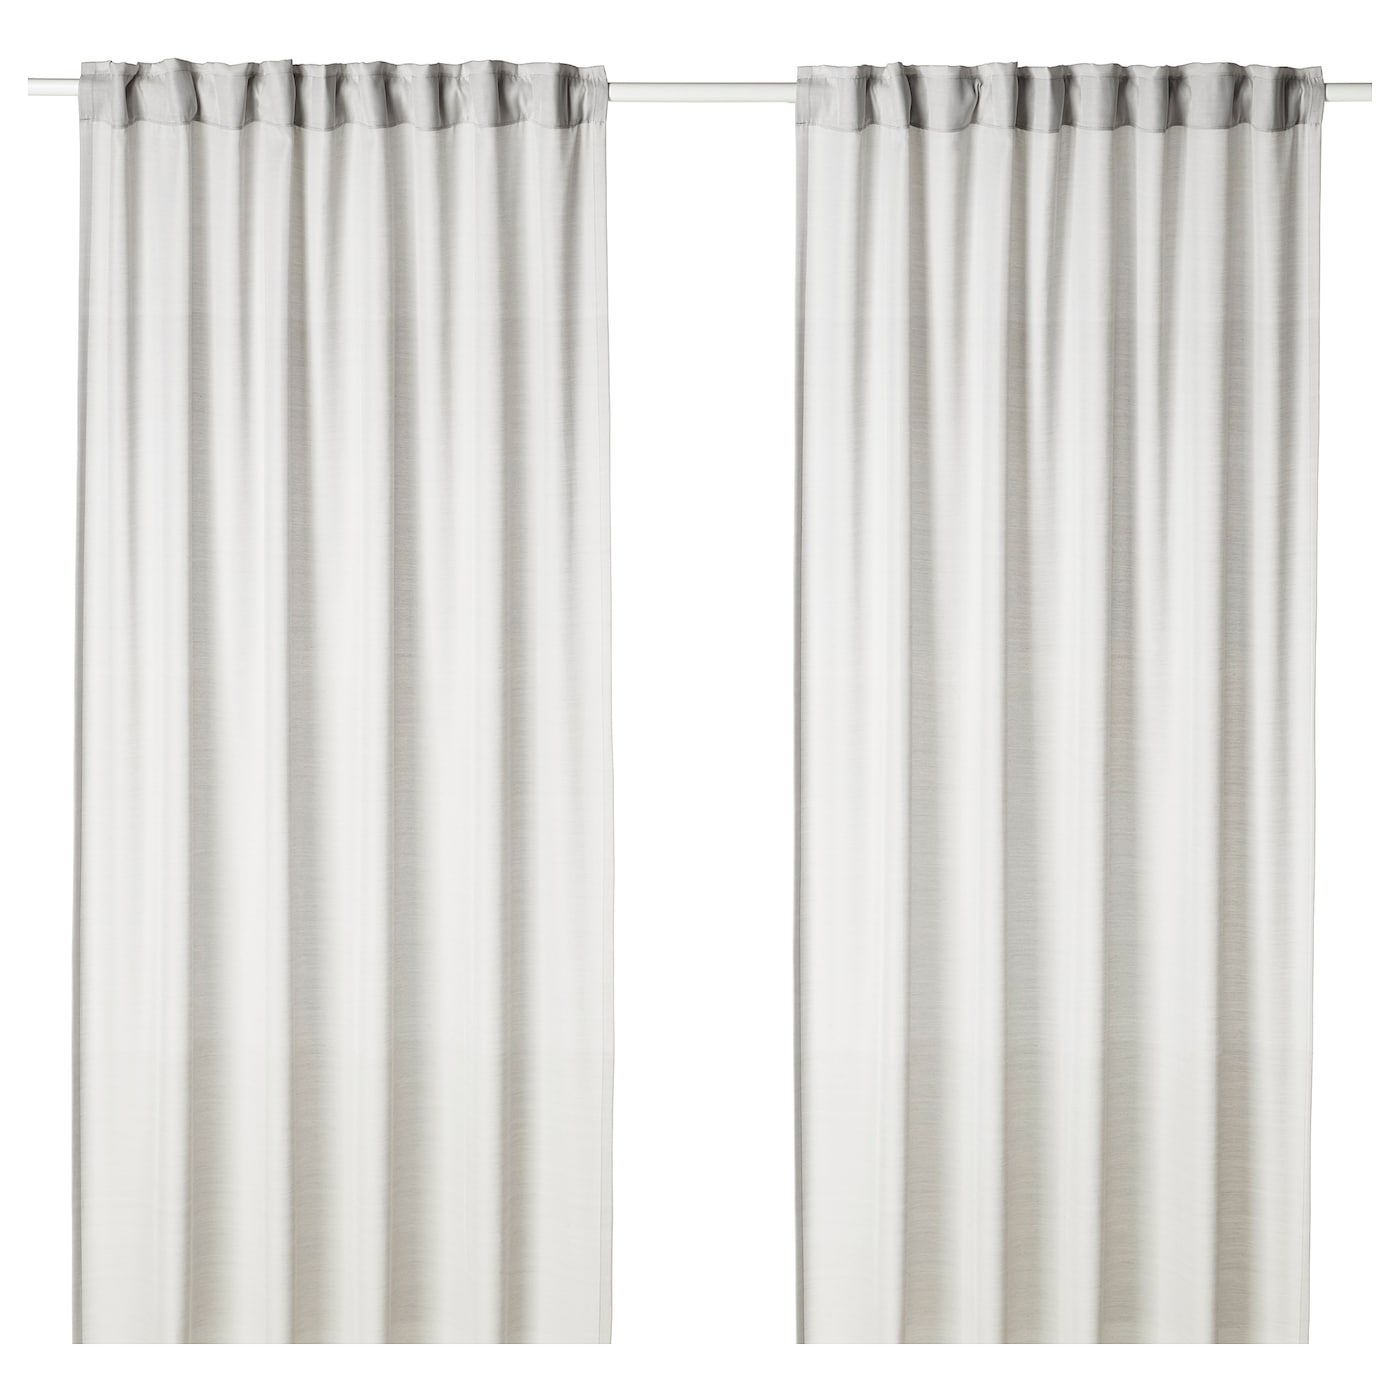 IKEA HILJA Curtains 1 Pair The Can Be Used On A Curtain Rod Or